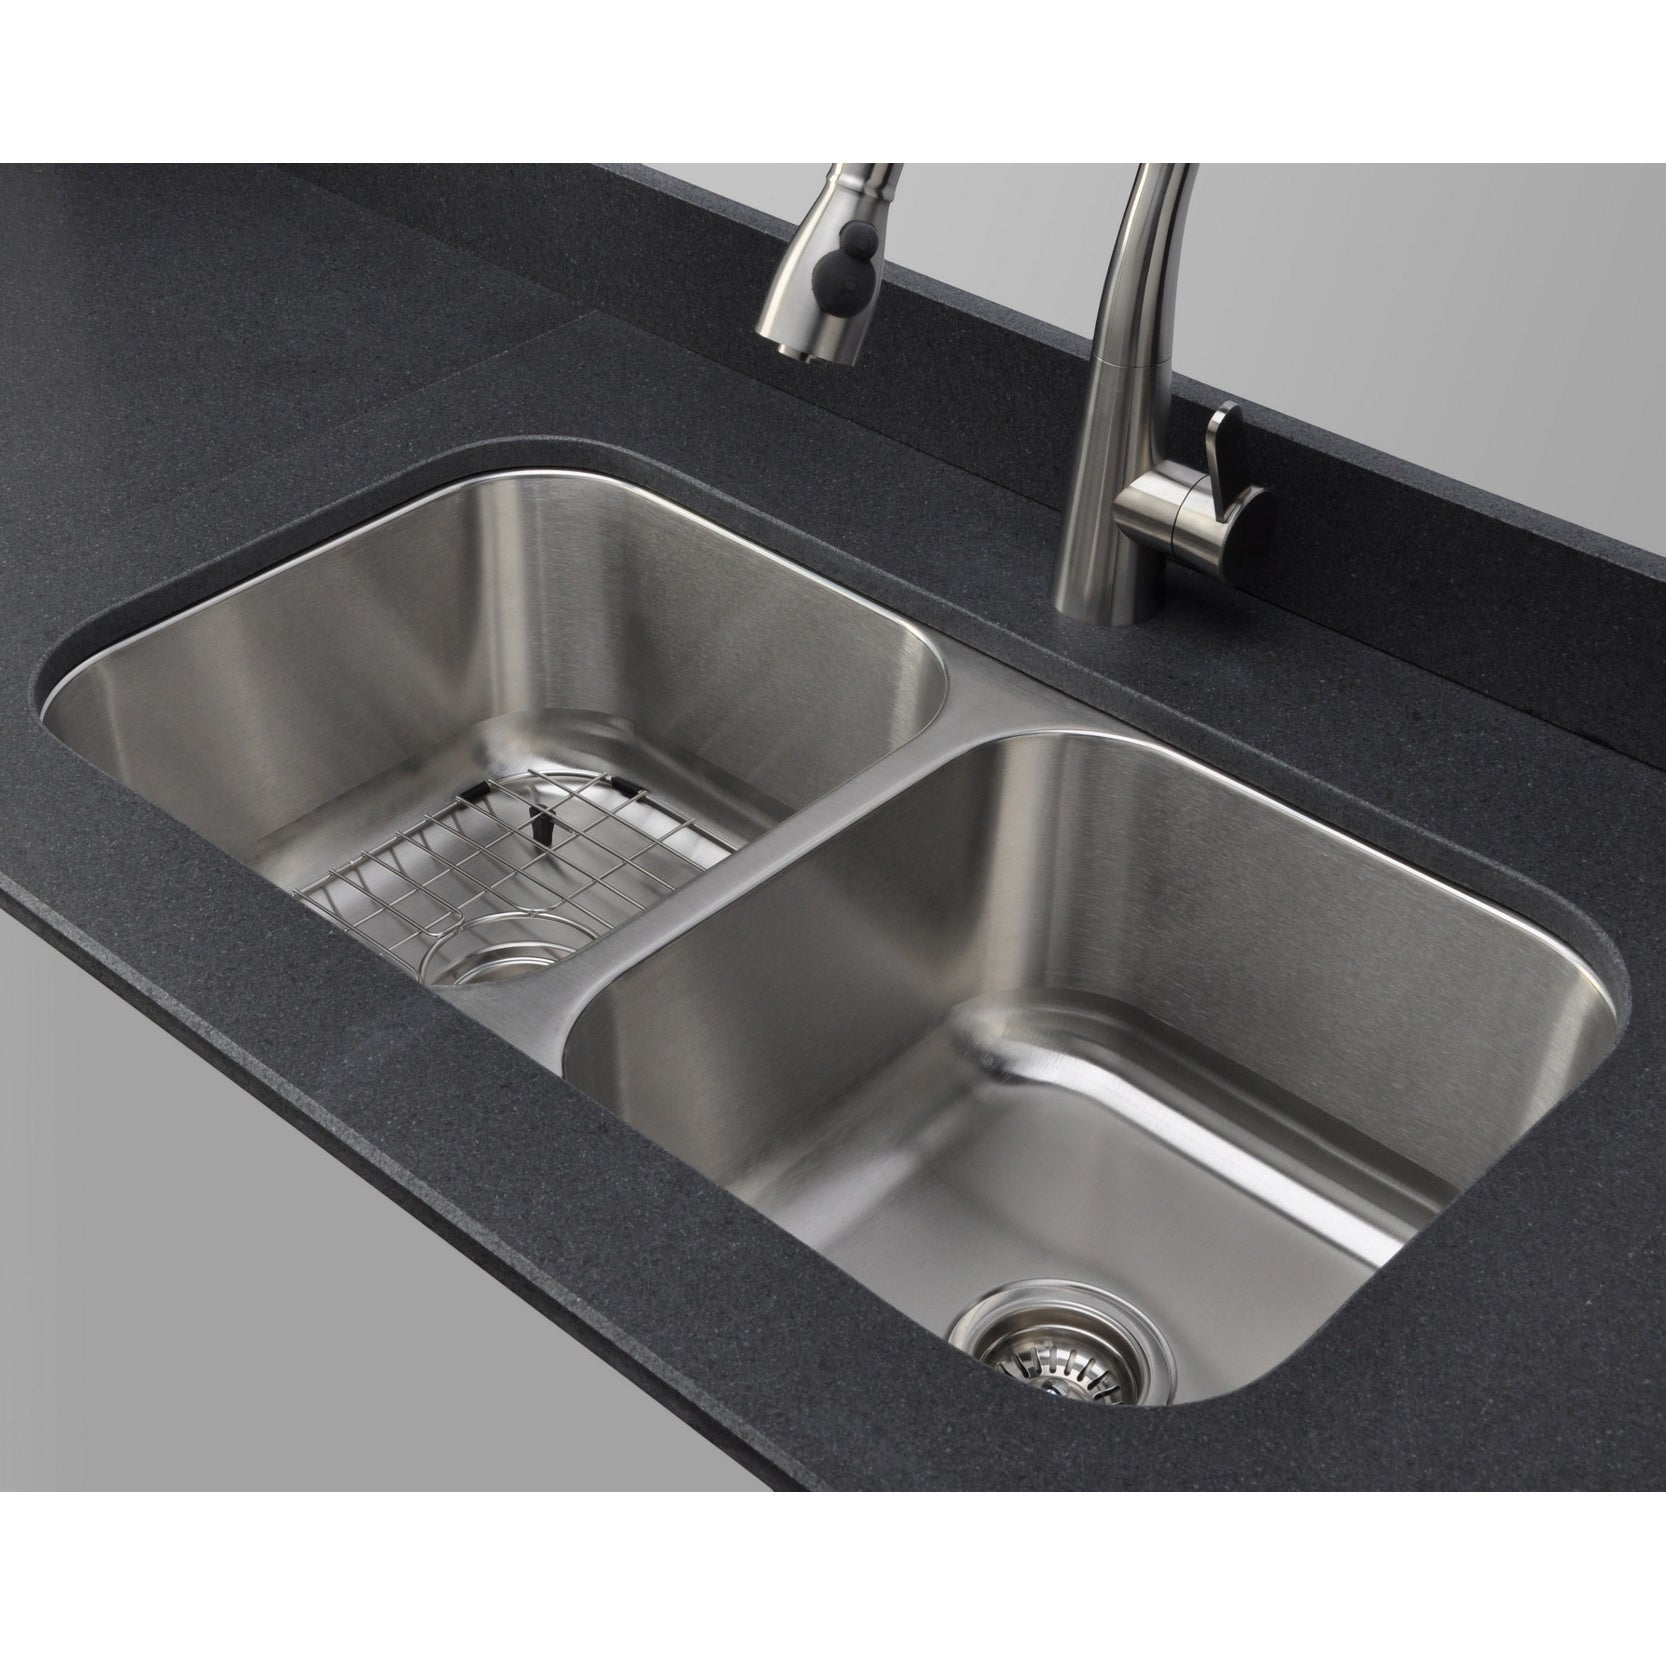 Double Bowl Undermount Stainless Steel Kitchen Sink Wells sinkware 18 gauge 5050 equal double bowl undermount stainless wells sinkware 18 gauge 5050 equal double bowl undermount stainless steel kitchen sink free shipping today overstock 16199009 workwithnaturefo